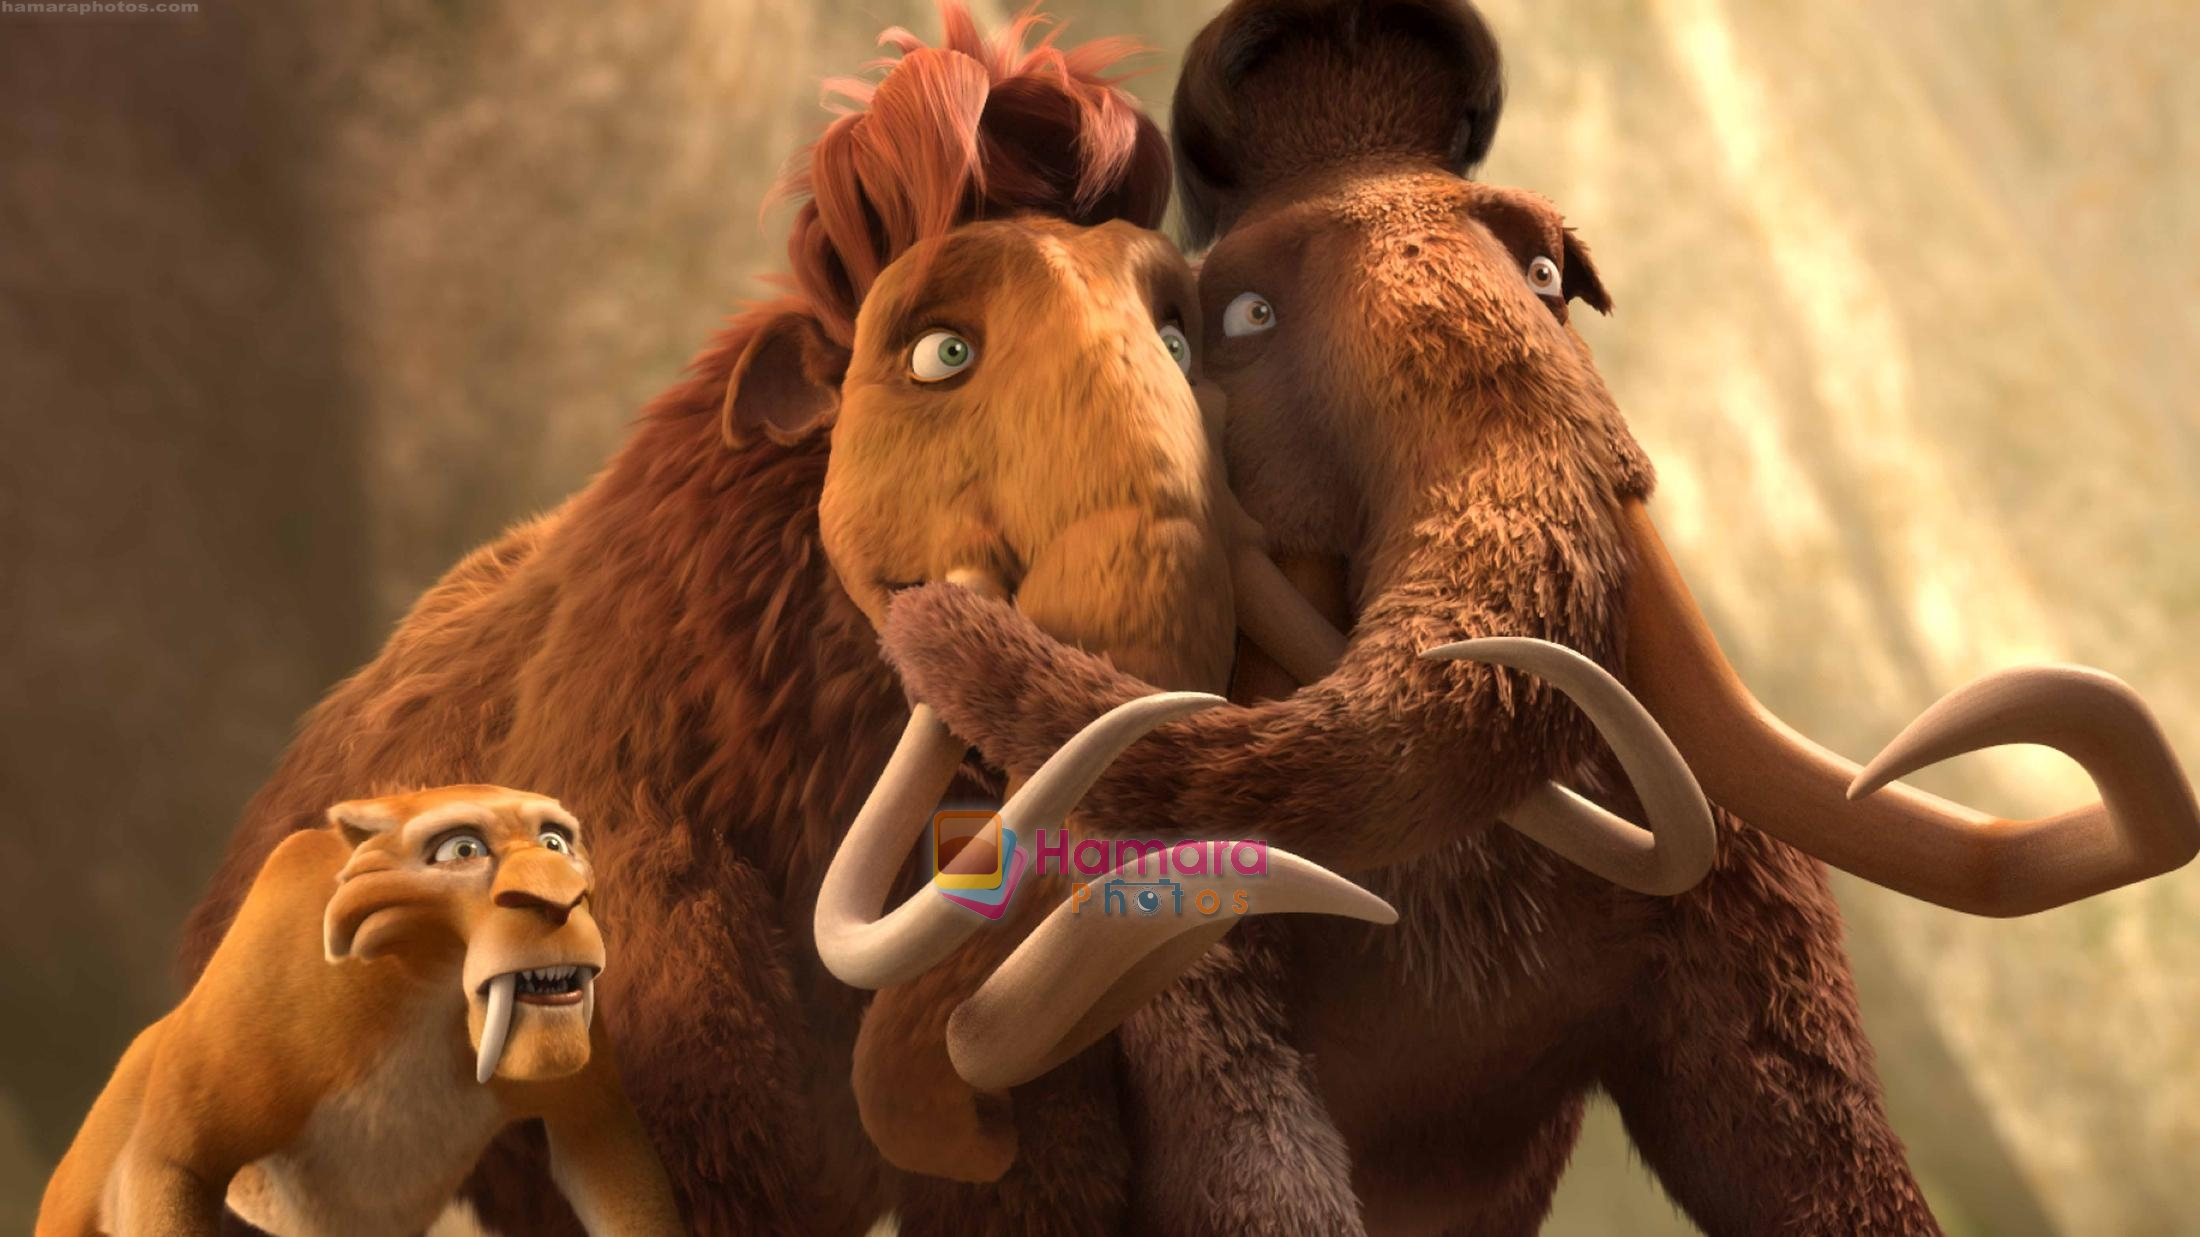 diego ellie manny in the still from movie ice age 3 most viewed